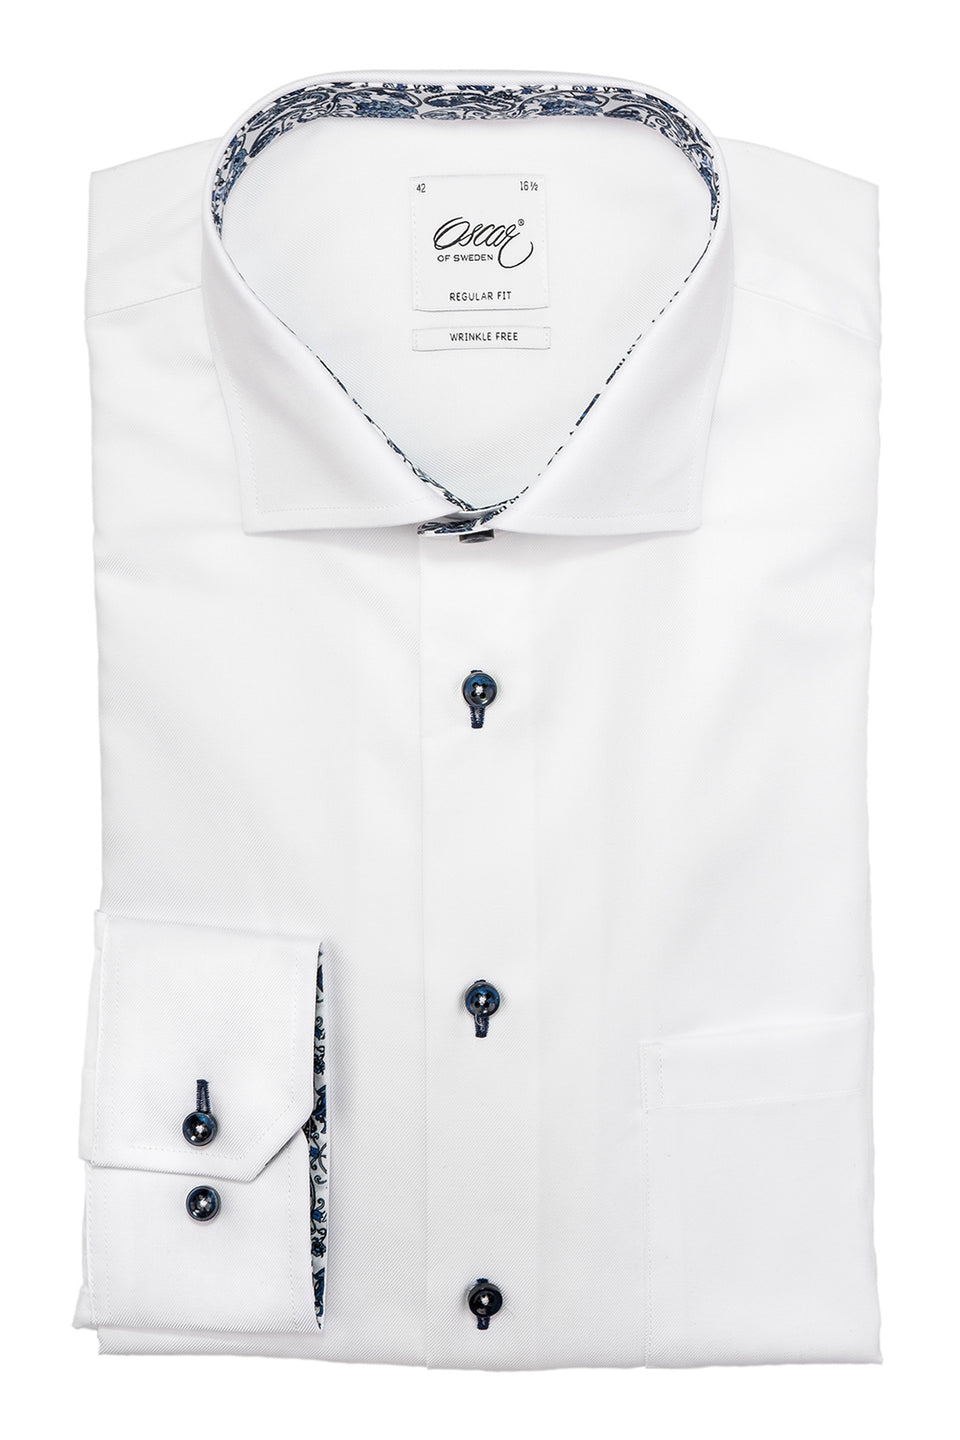 White regular fit shirt with blue paisley details